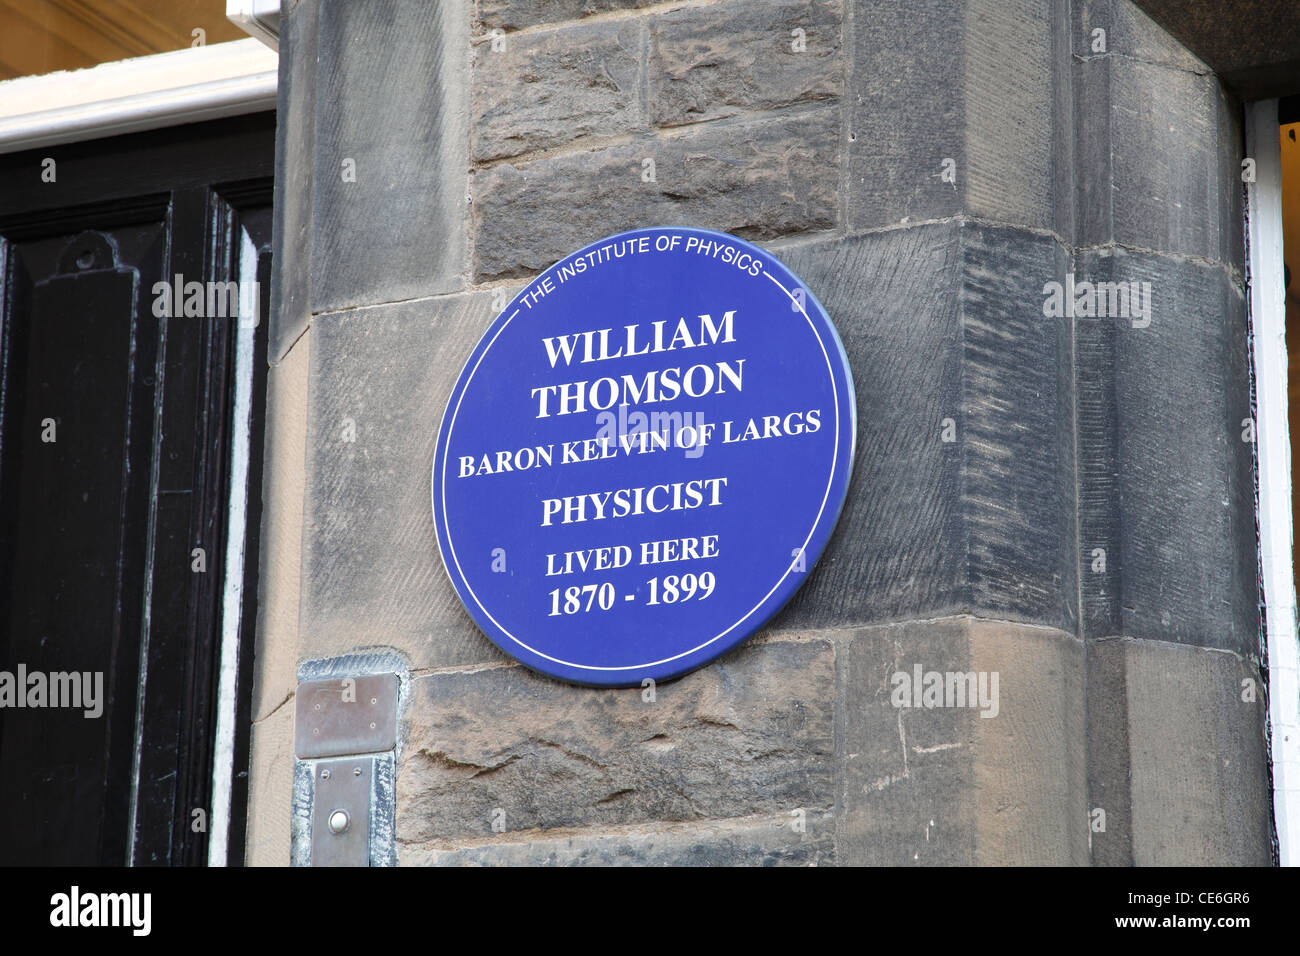 An Institute of Physics Blue Plaque commemorating Lord Kelvin, William Thomson, at the University of Glasgow Scotland - Stock Image